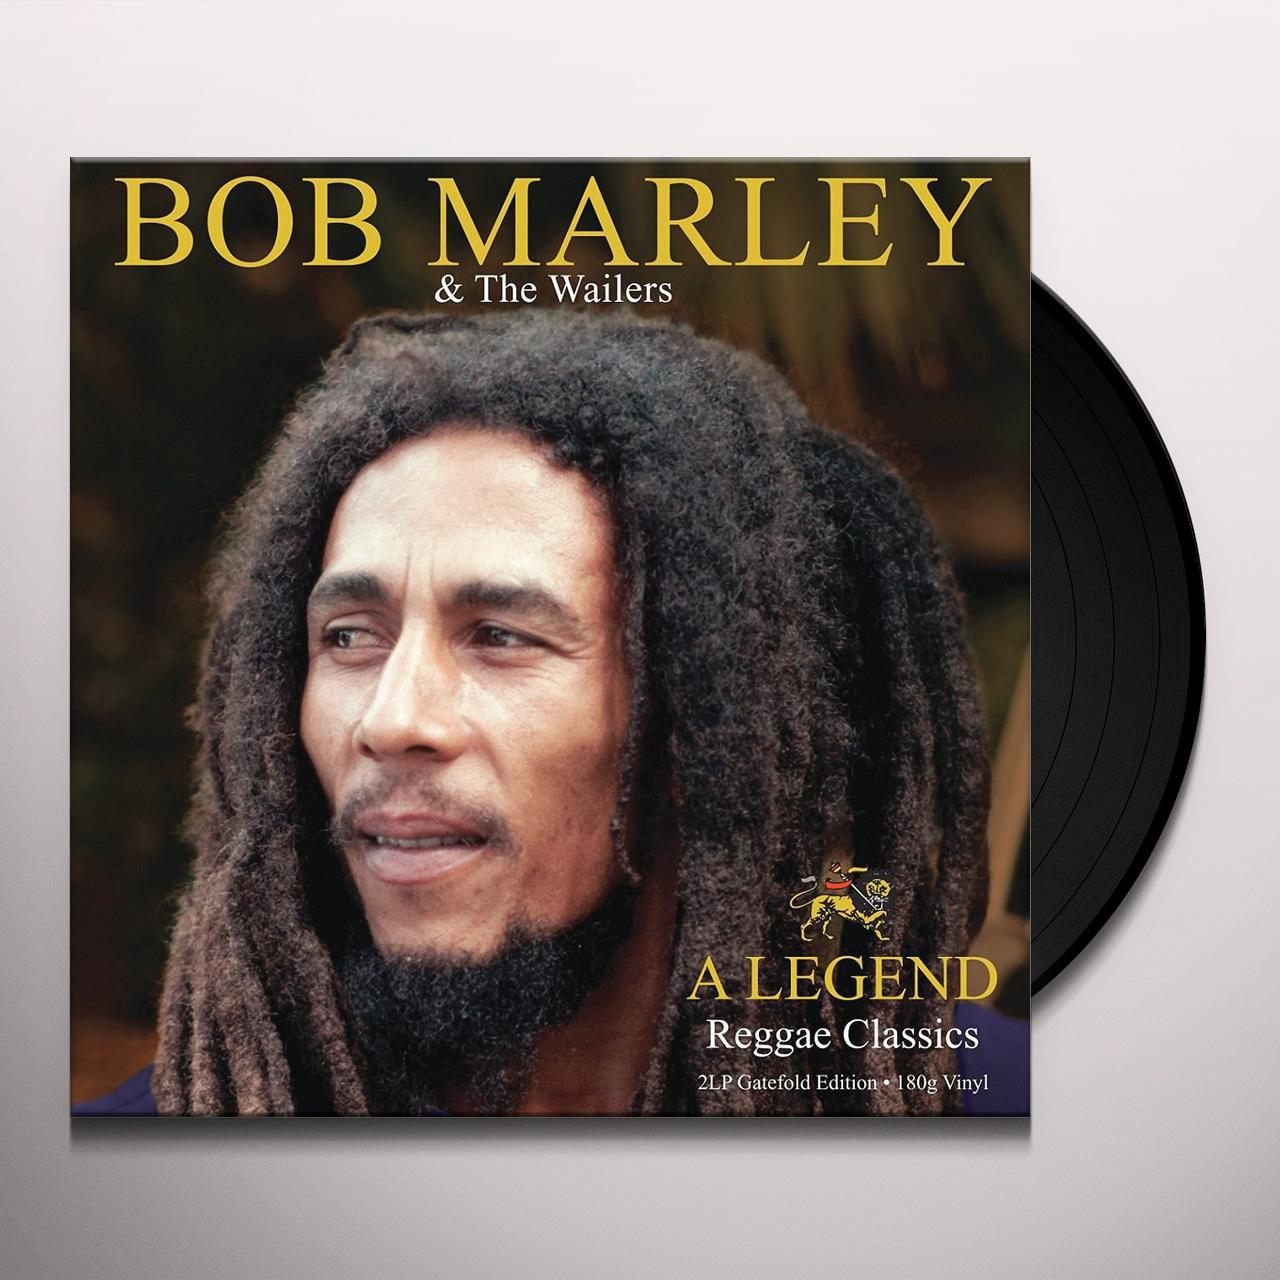 Bob marley legend vinyl record bob marley legend vinyl record tap to expand thecheapjerseys Images